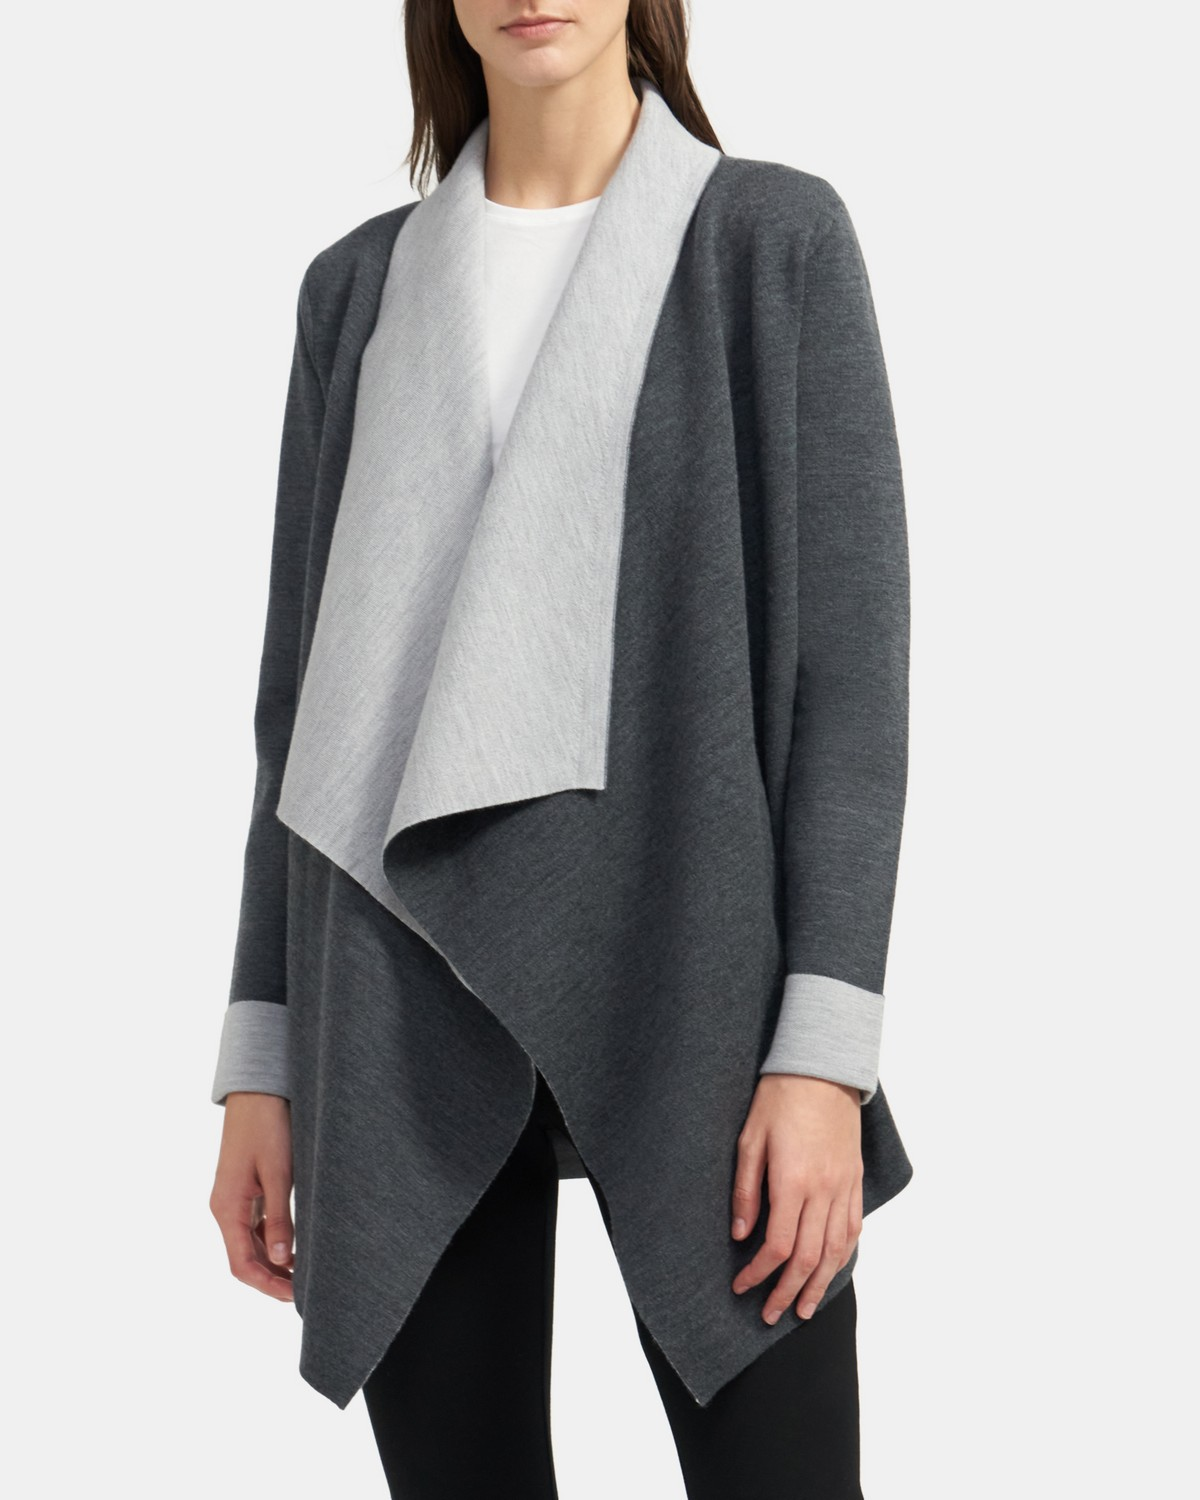 Open Cardigan in Double-Face Wool Blend